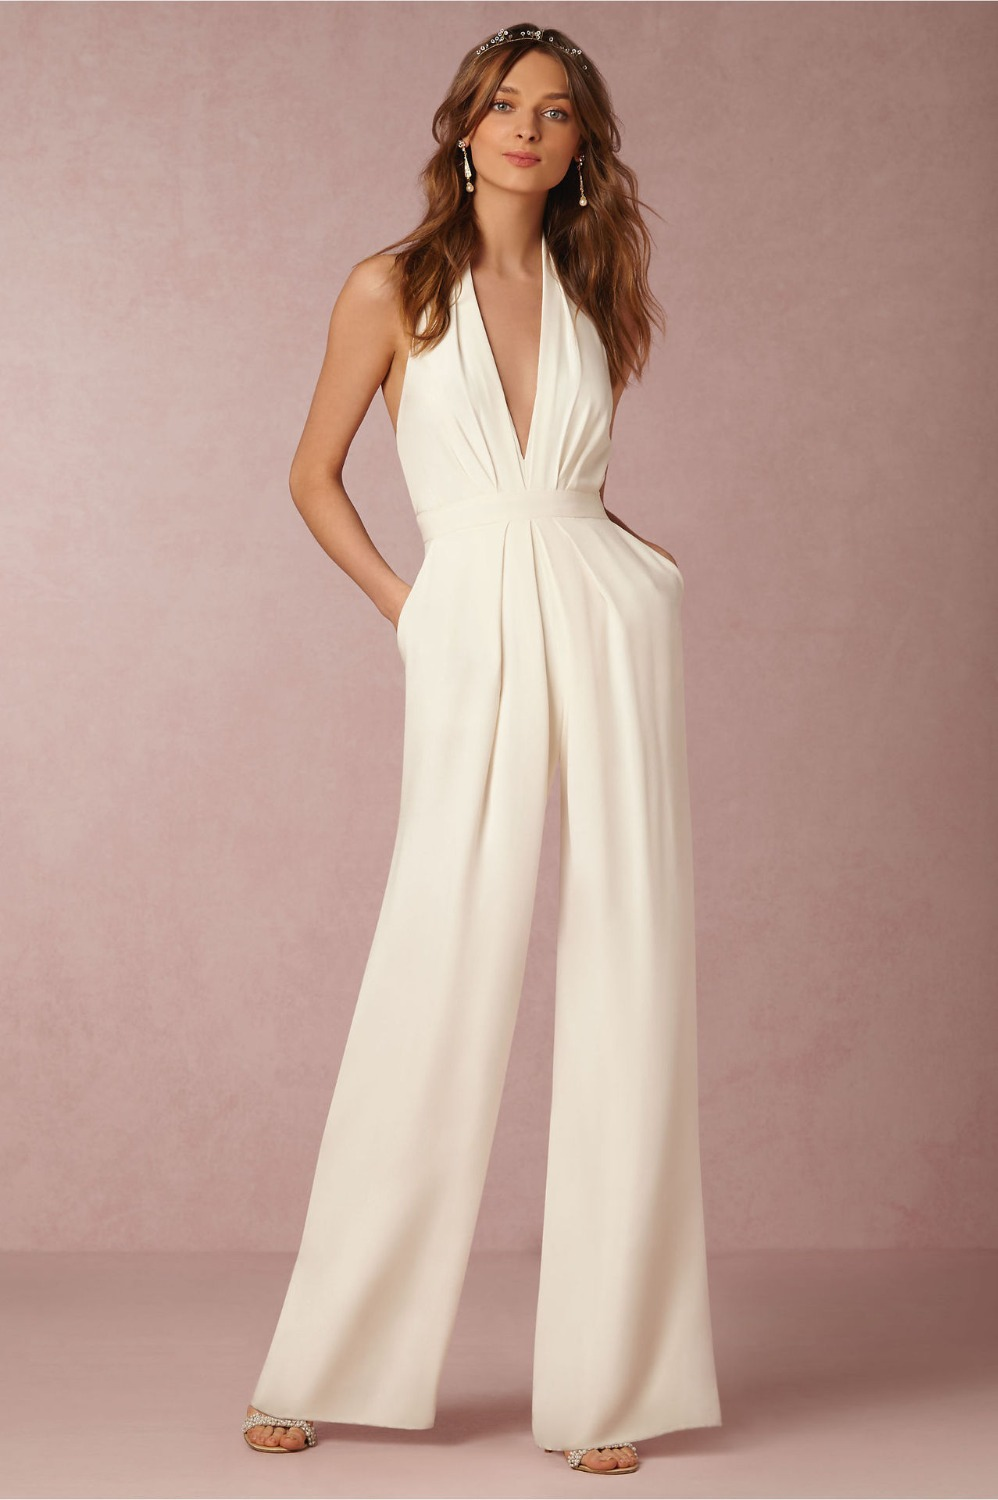 2018 Summer New Office Ladies Jumpsuits Hollow out Deep V Hanging neck Sleeveless Straight Fashion Sexy 6 Colors Jumpsuits ...